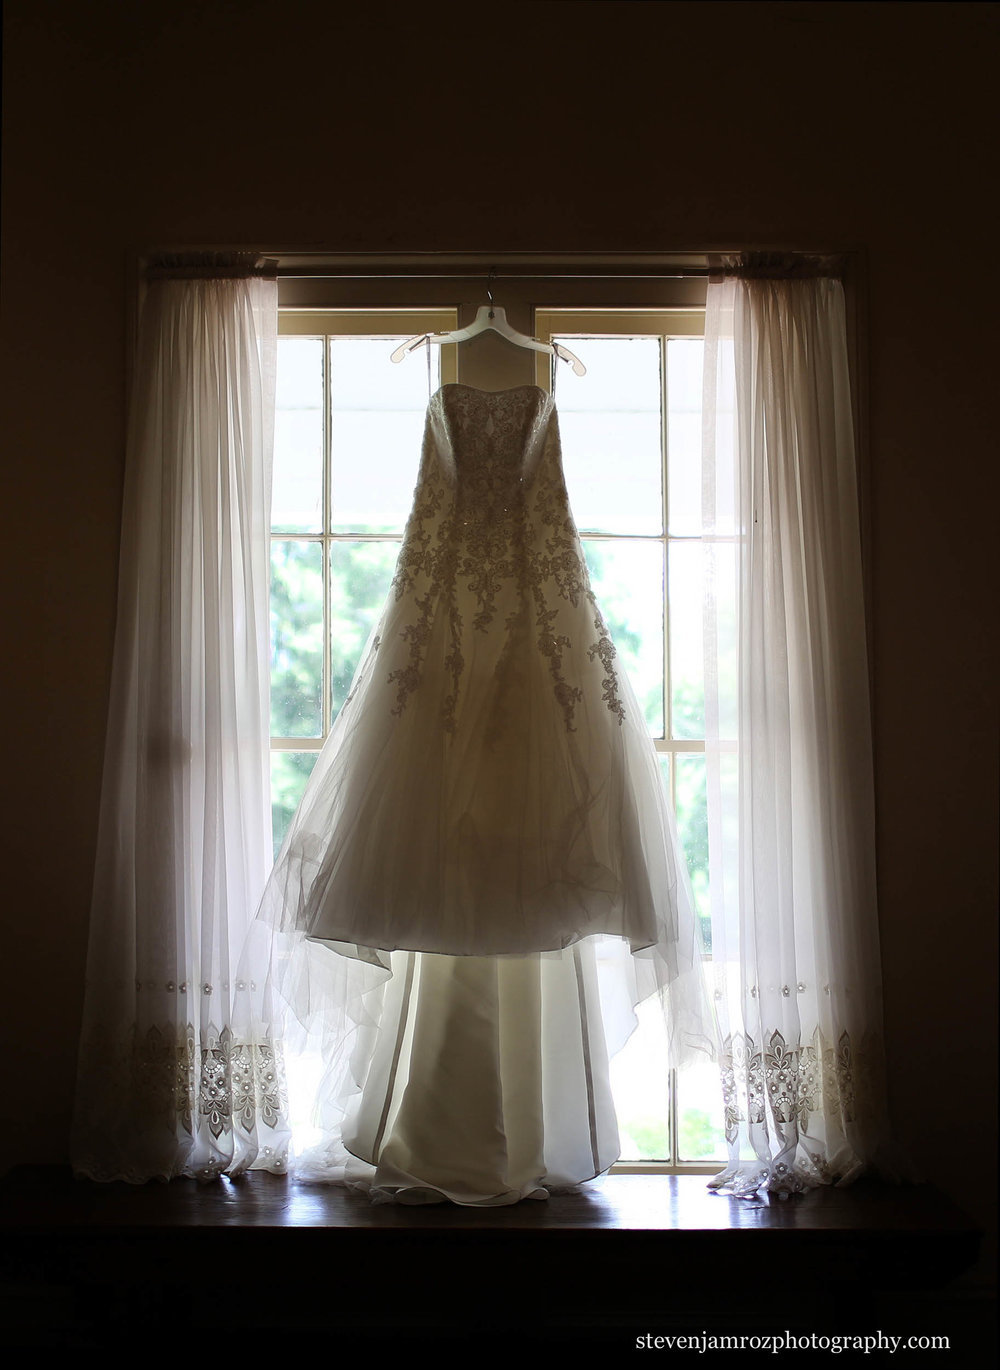 dress-hangs-at-rose-hill-plantation-nc-wedding-0794.jpg